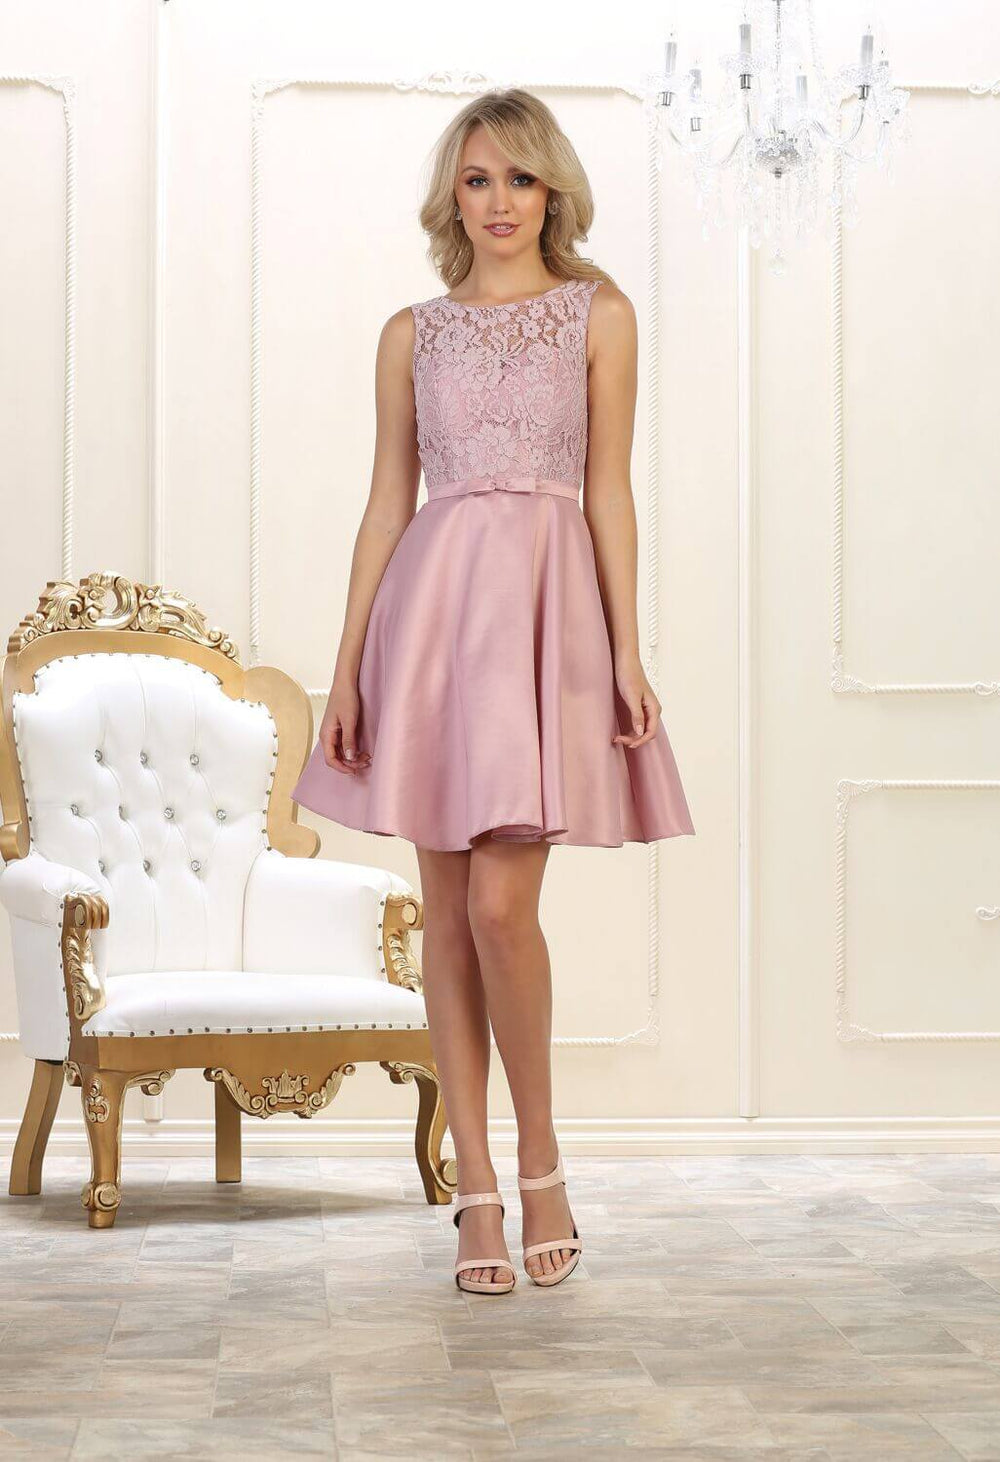 Short Prom Dress Formal Graduation Cocktail - The Dress Outlet Mauve